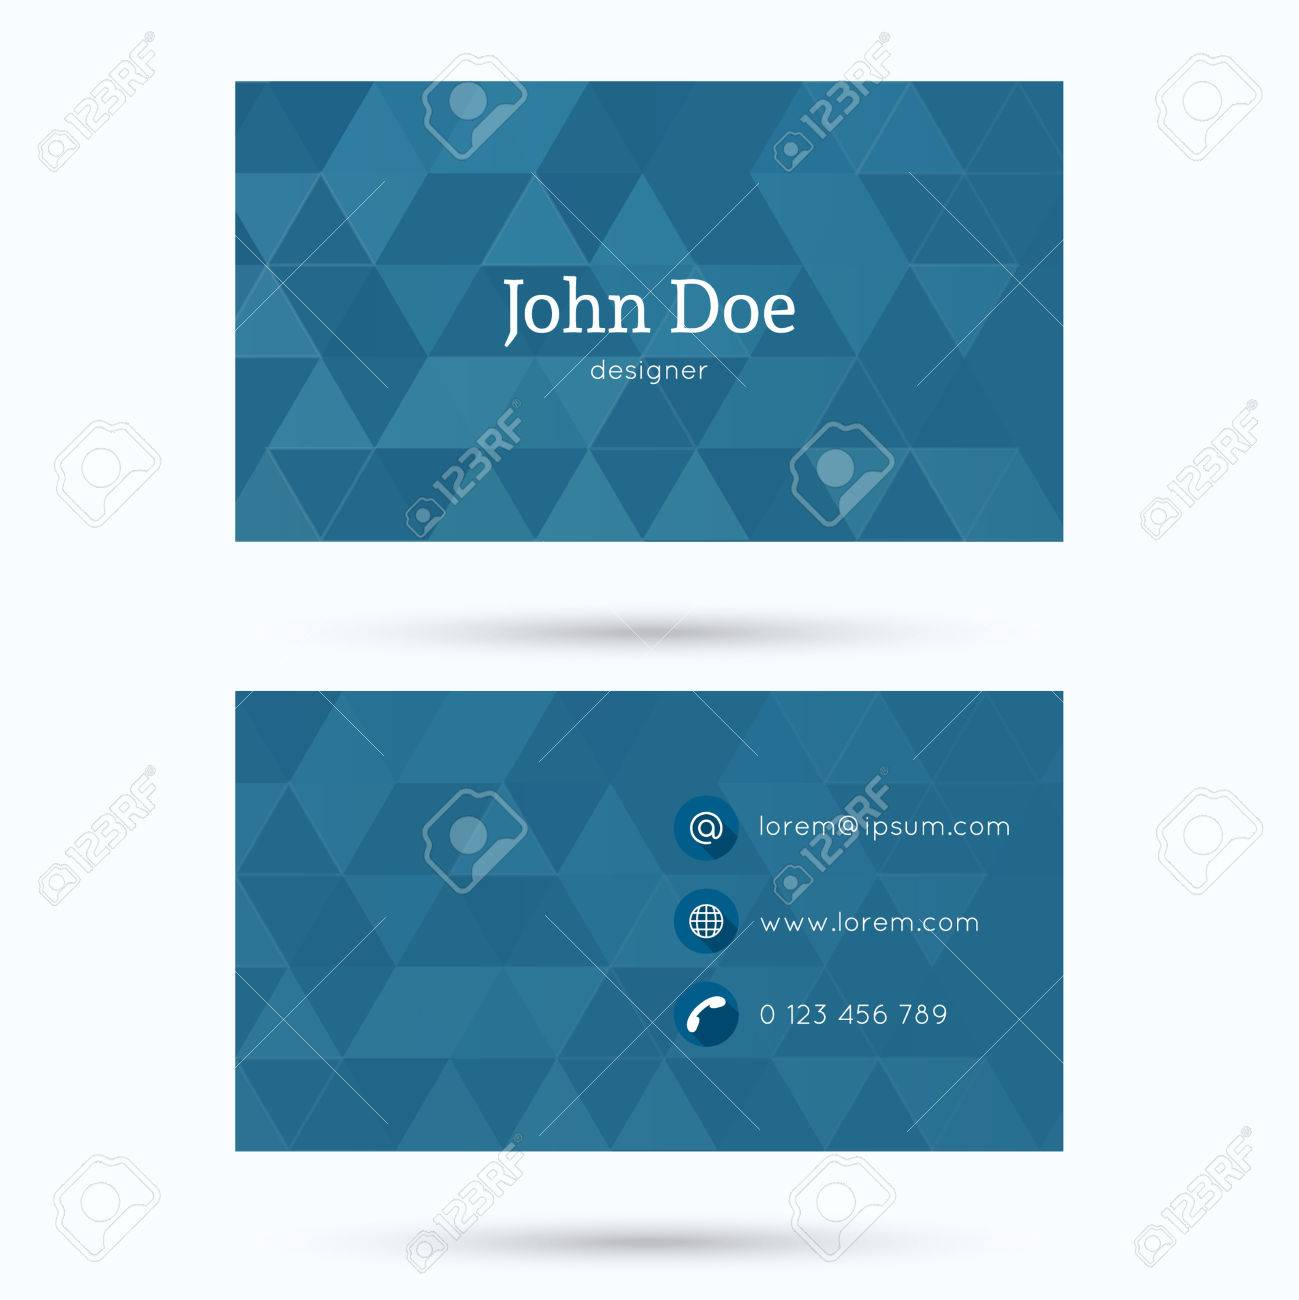 business card or visiting card template with a triangular texture